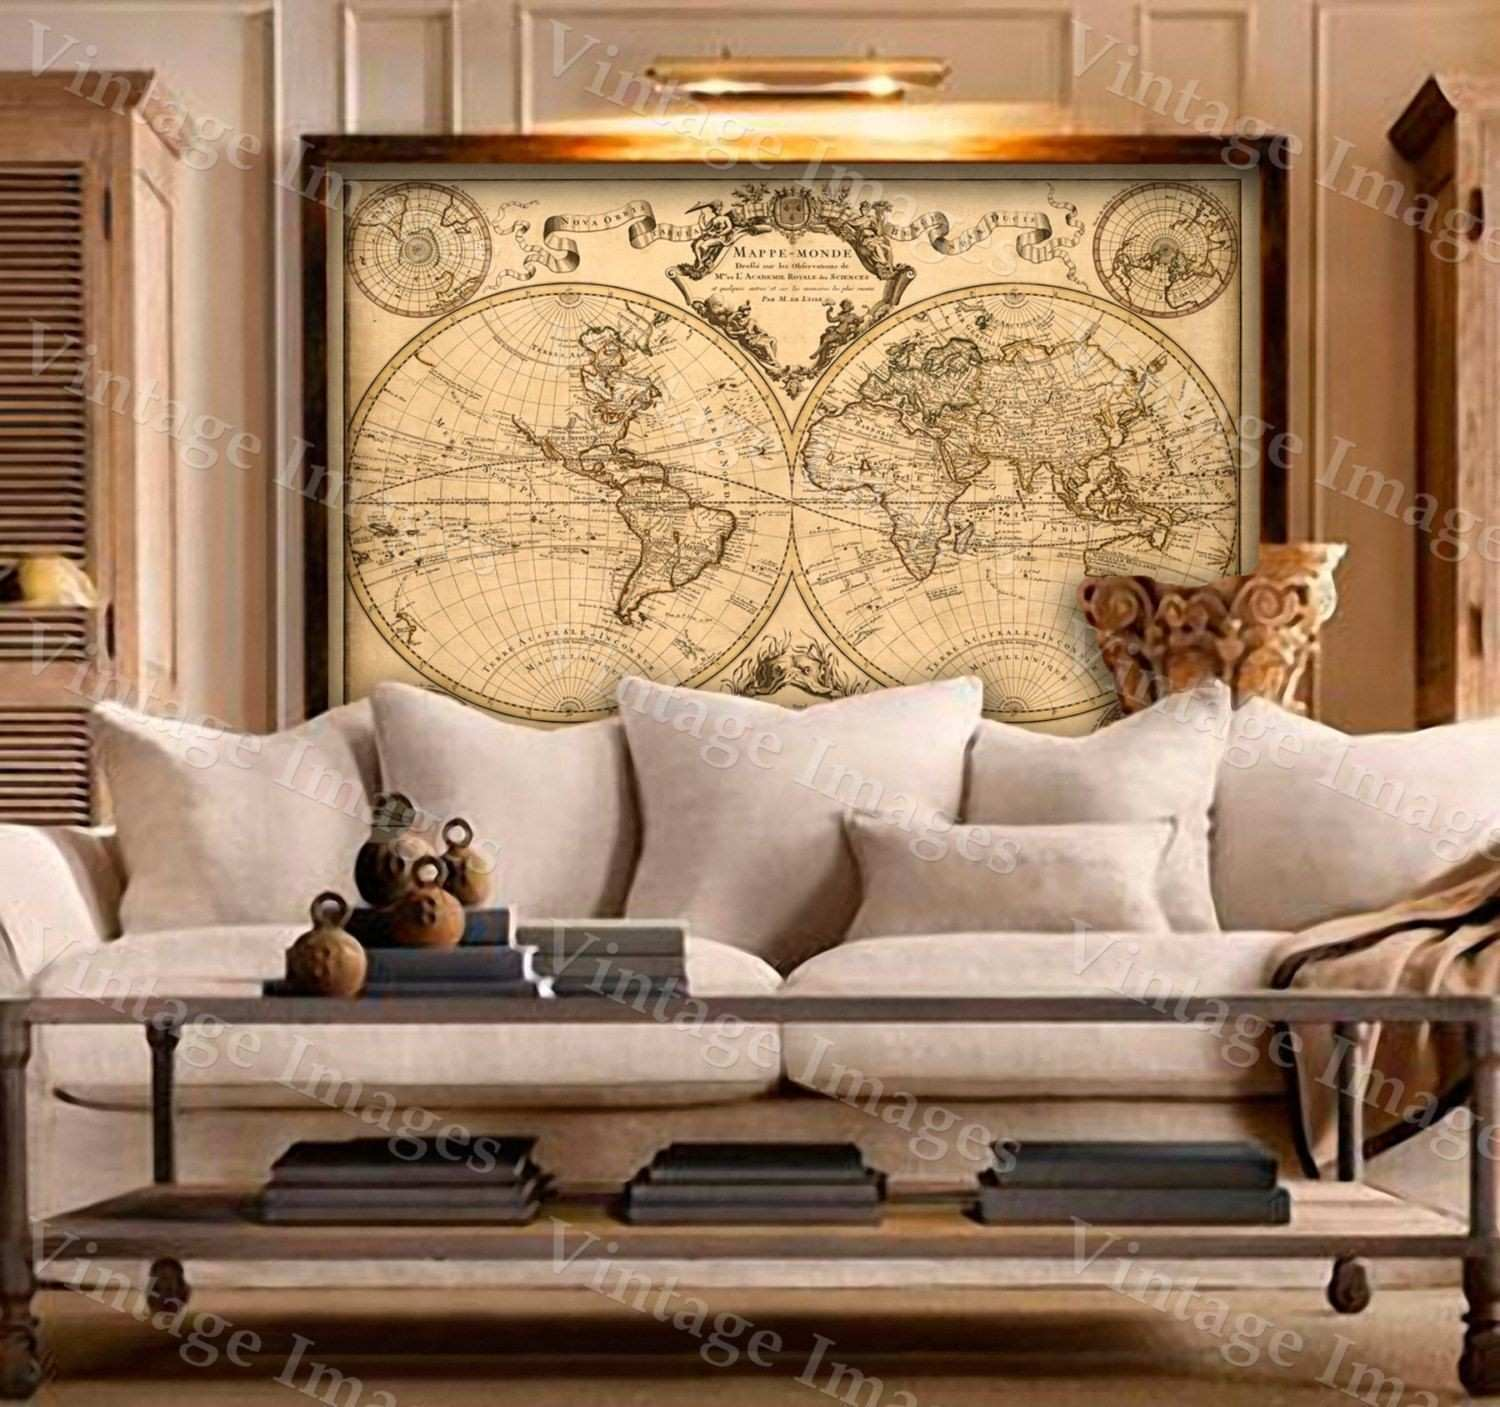 1720 Old World Map map art Historic Map Antique Style World Map wall